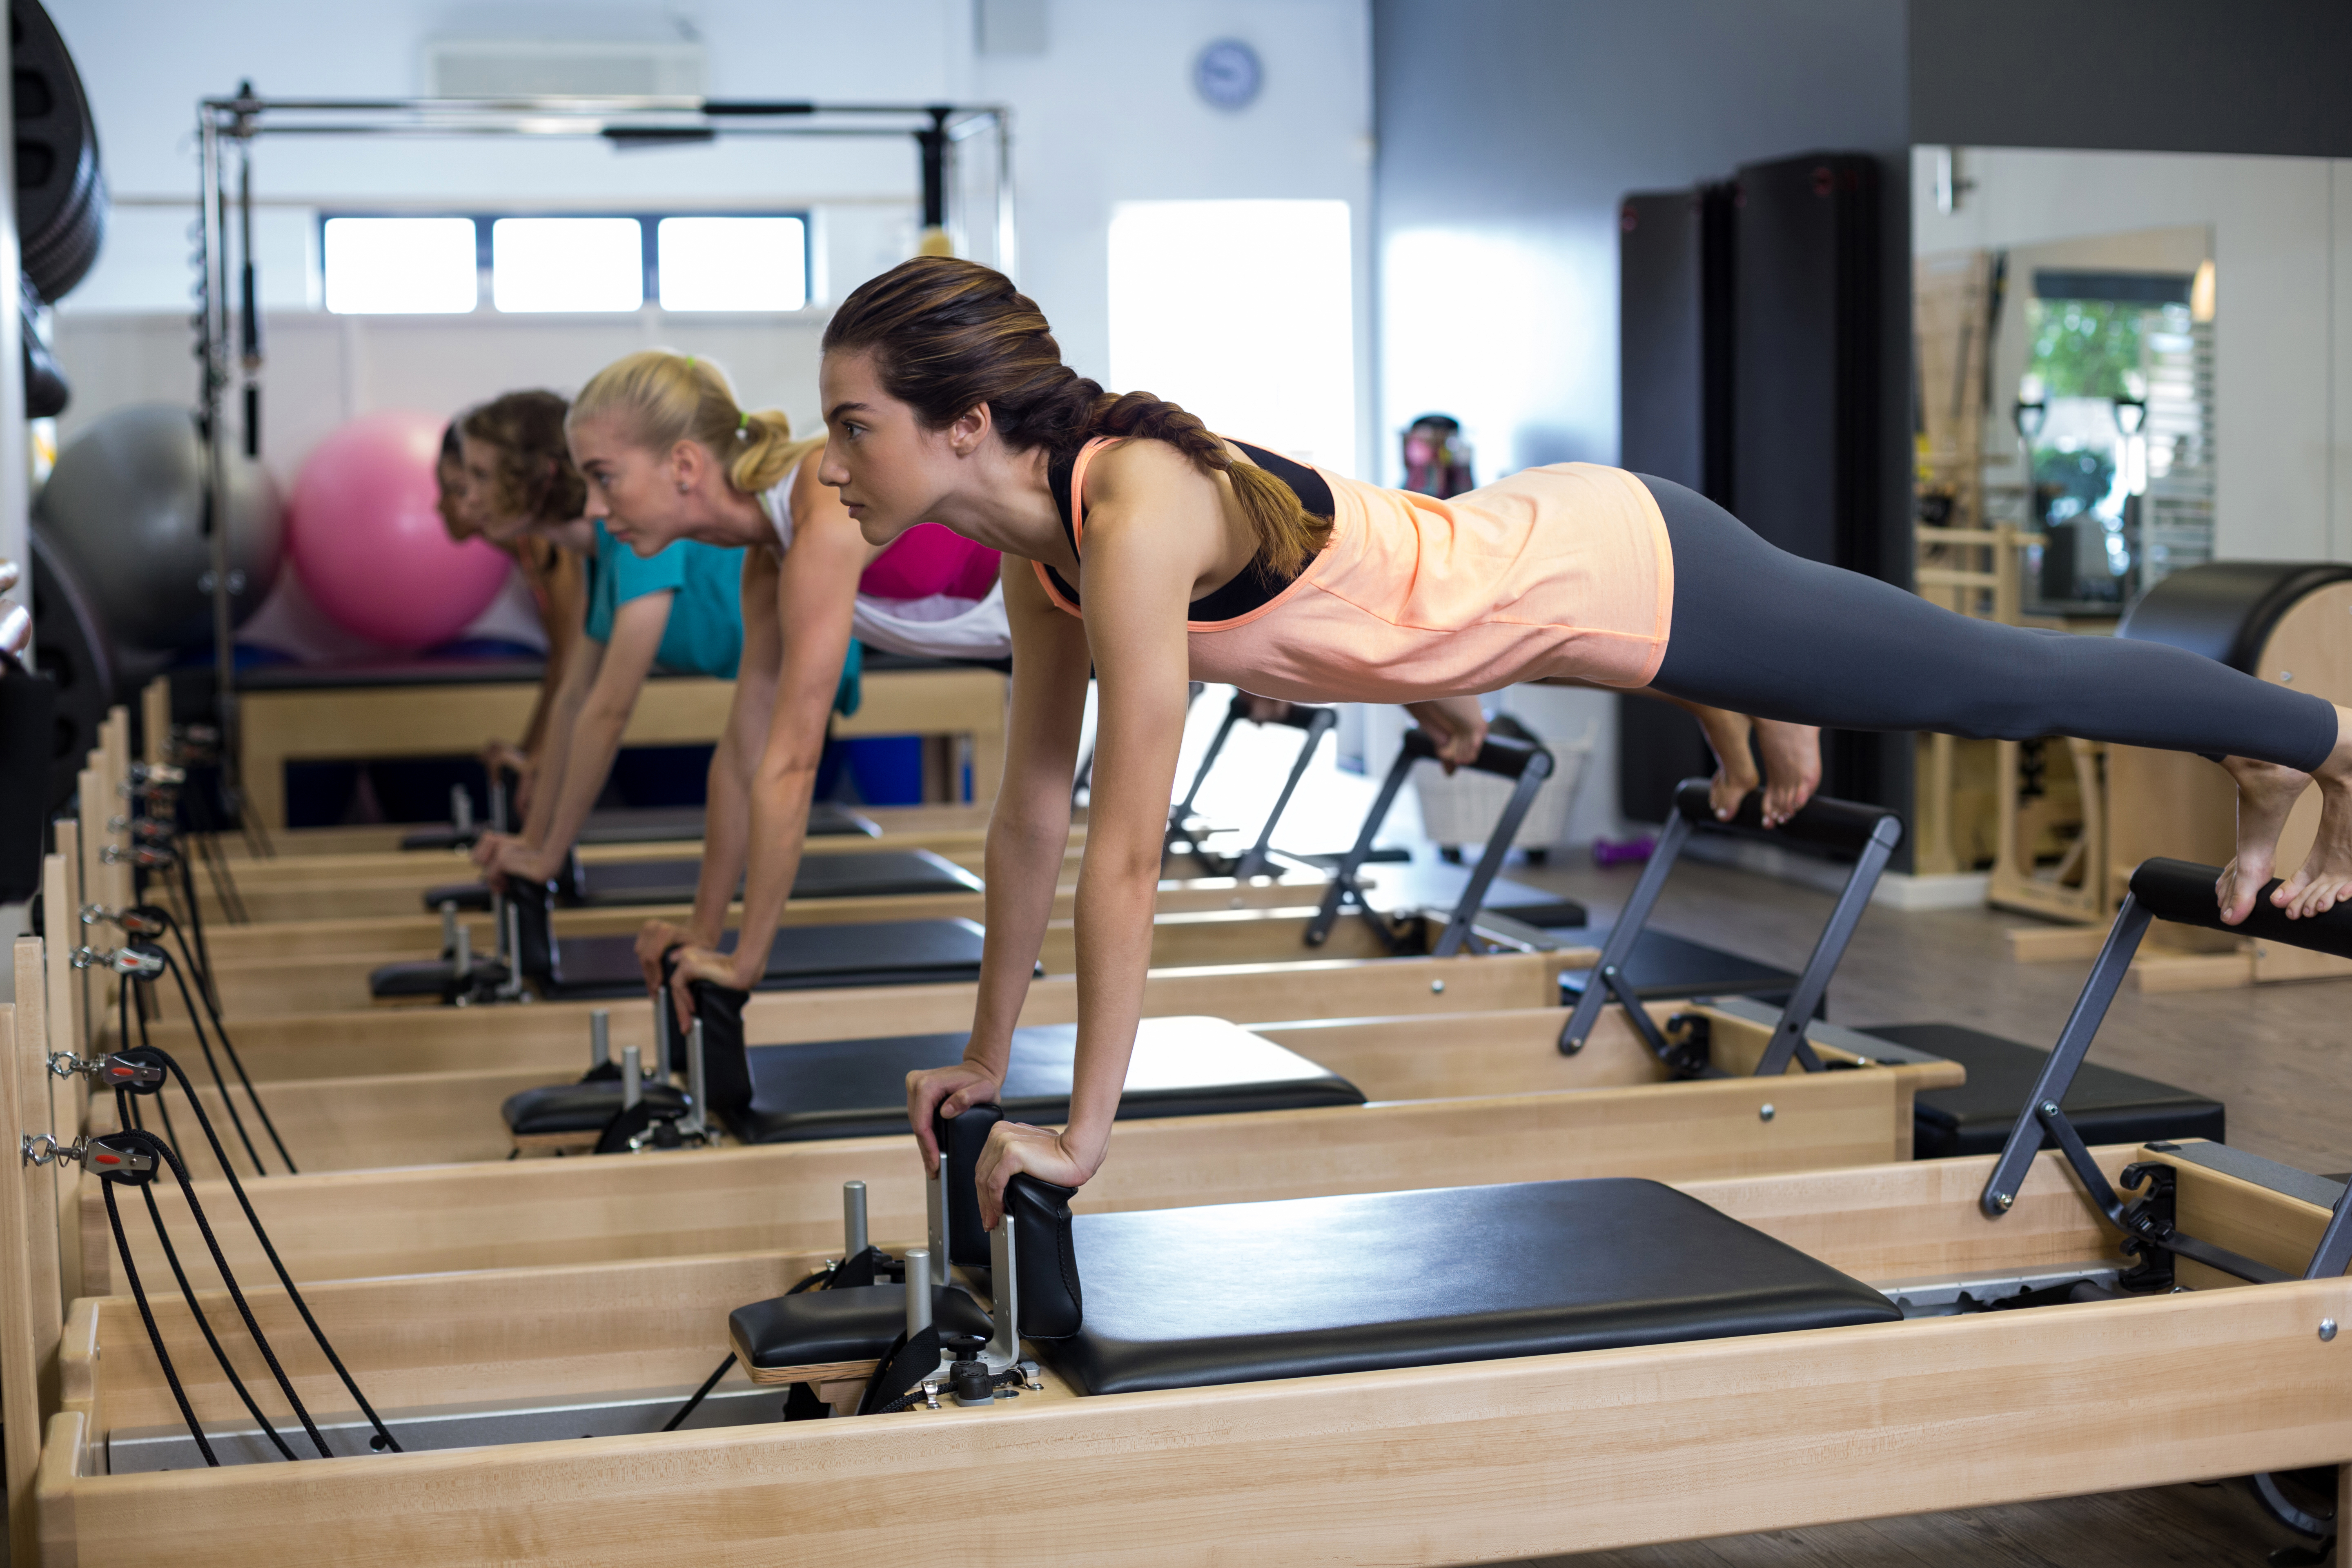 5 Best Stretches You Can Do On The Pilates Reformer Machine